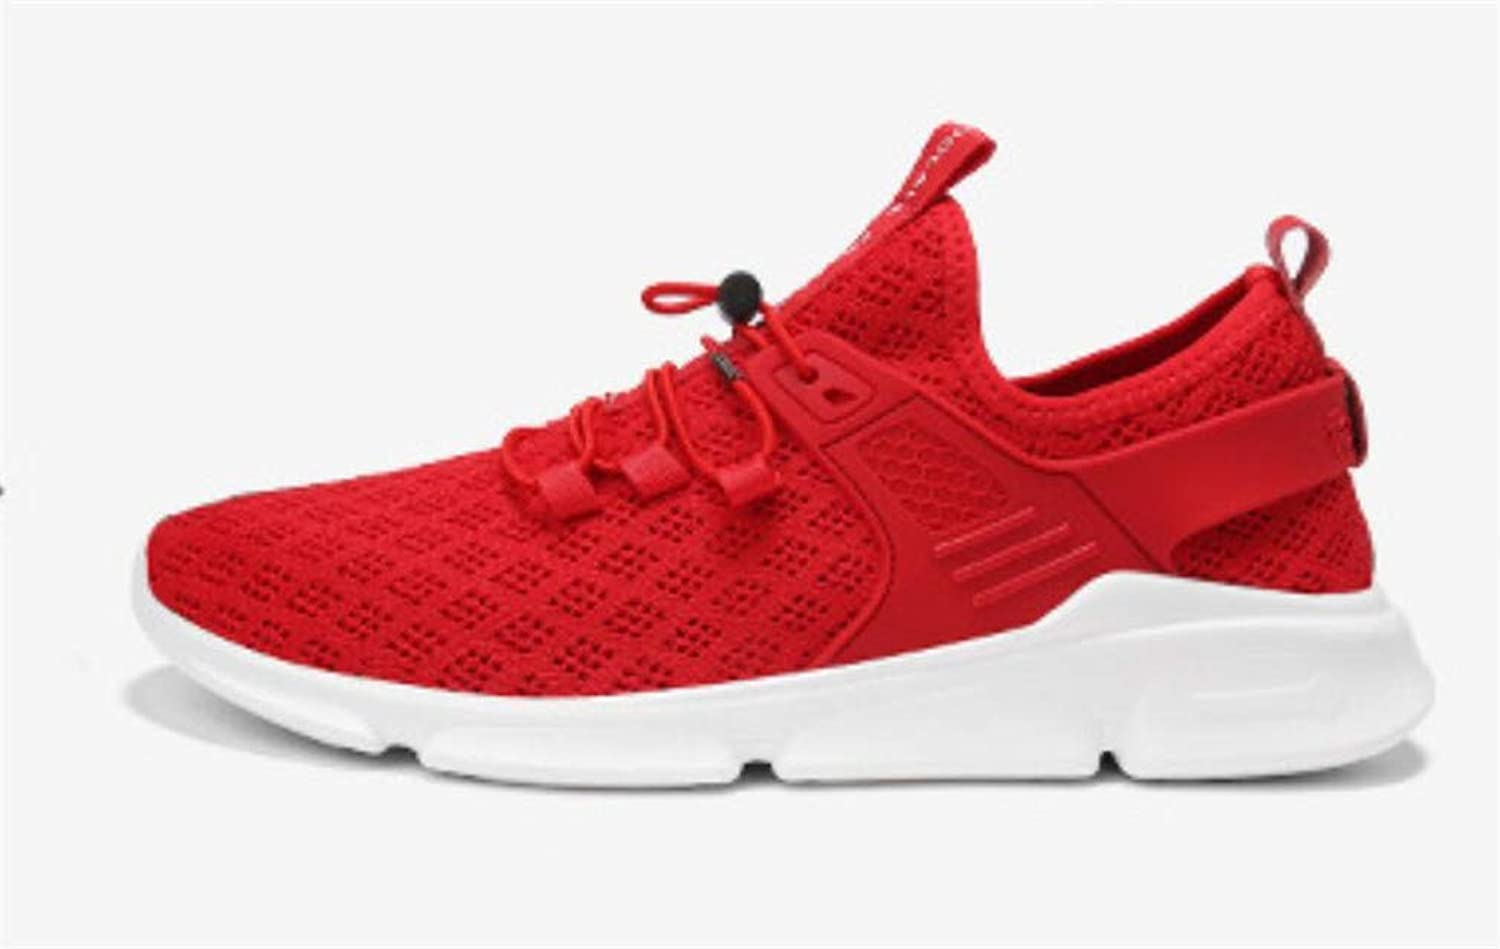 LUCKY-U Men shoes,Running shoes Lightweight Shockproof Fashion Sports Athletic Sneakers for Gym Walking